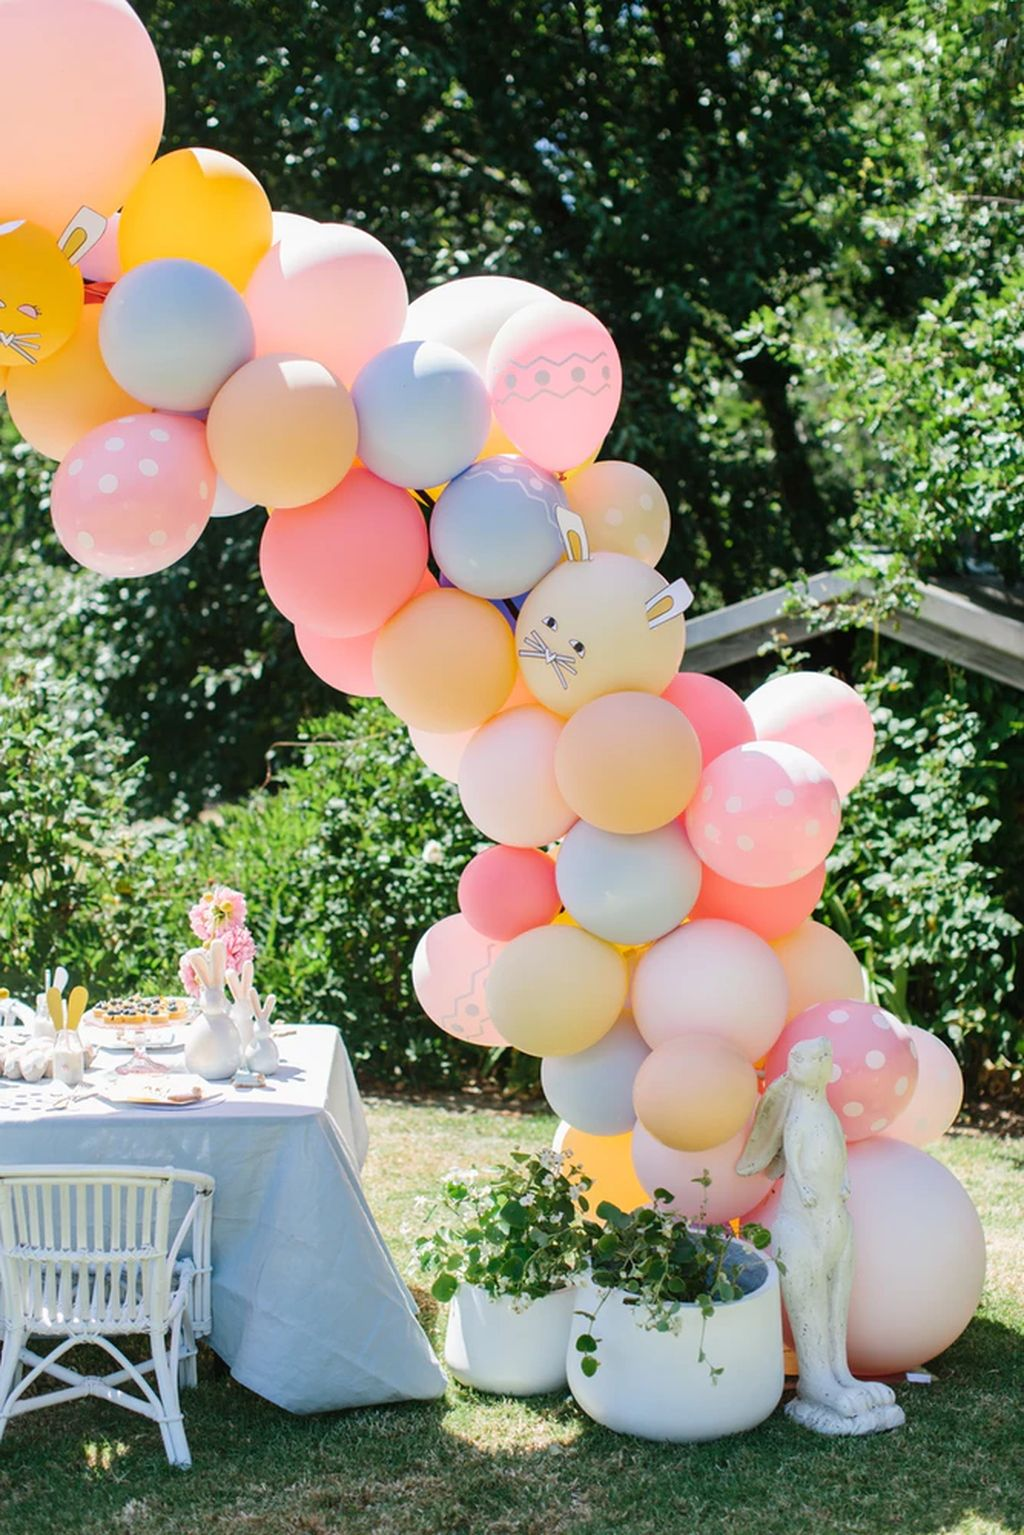 20 Enchanting Easter Outdoor Decoration Ideas To Refresh Your Everyday Spirit Easter Party Decor Easter Birthday Party Easter Decorations Outdoor